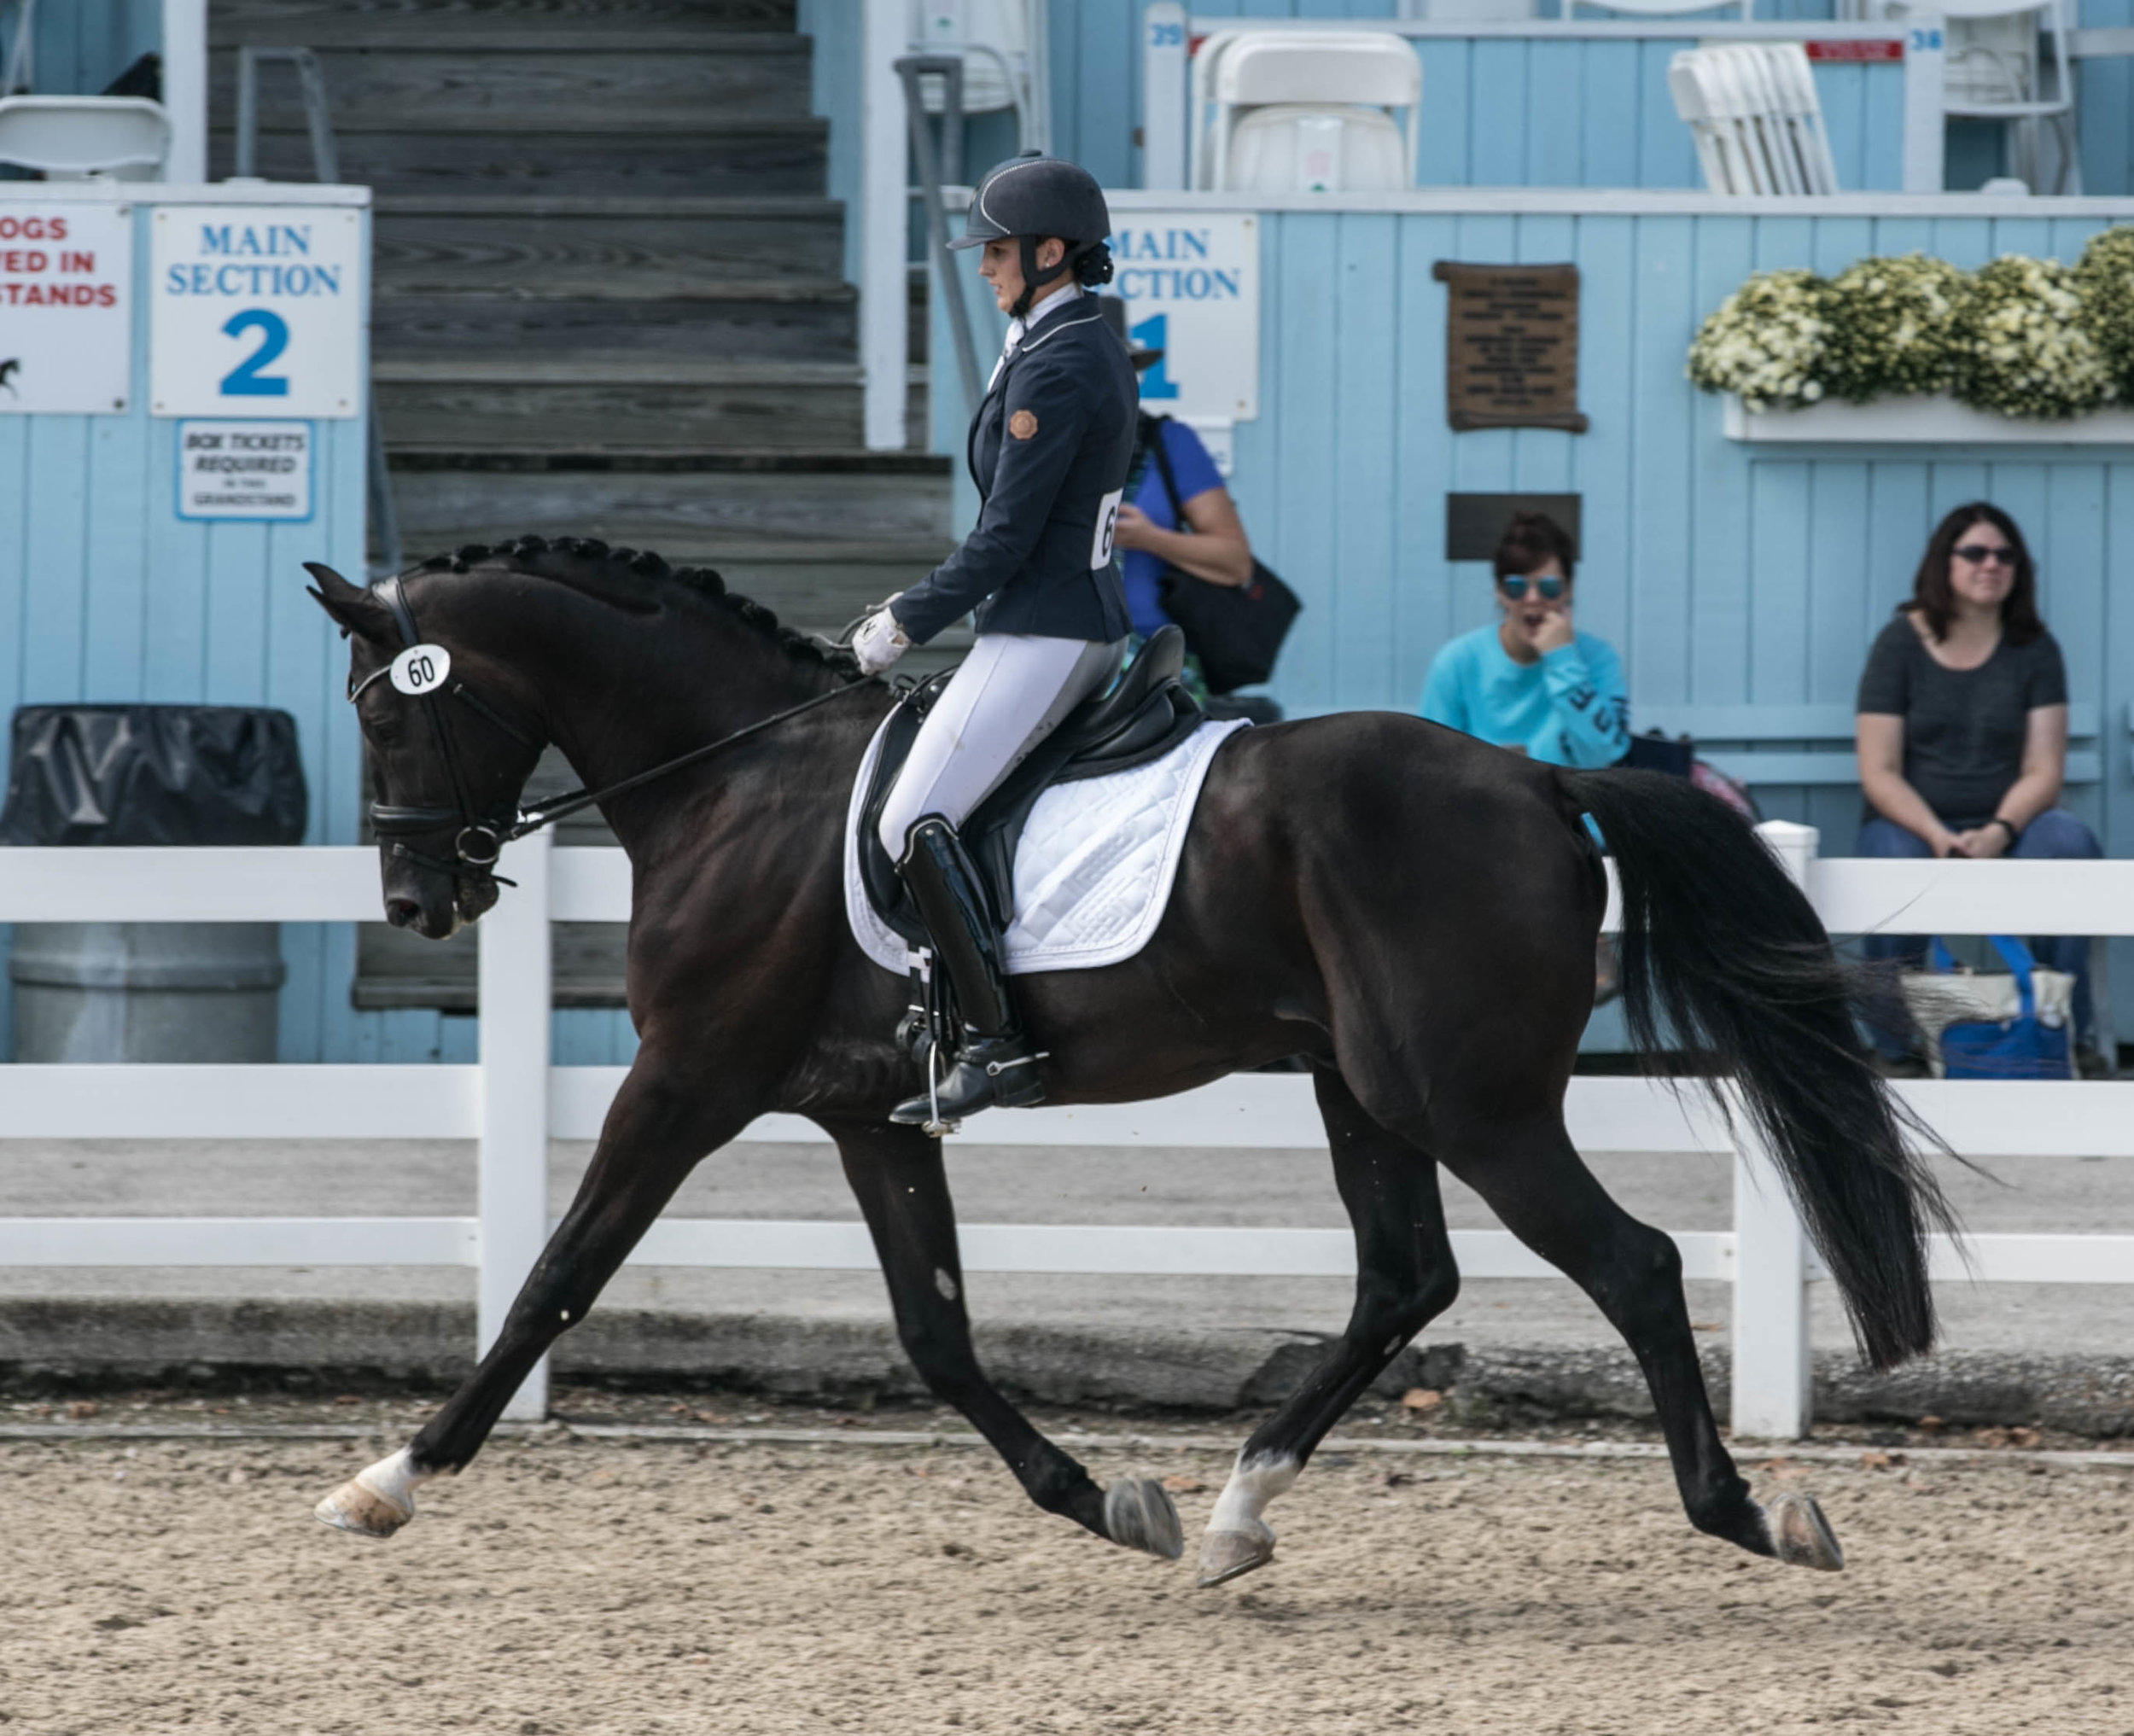 Dressage at Devon 2018 - Dressage at Devon 2018 is a wrap! Davos CF took first place in the Four Year Old Stallion and Geldings Material Class with a score of 83.2 %! He then went on to win the combined Material Class Final, and also the FEI Four Year Old Test. VIDEO: